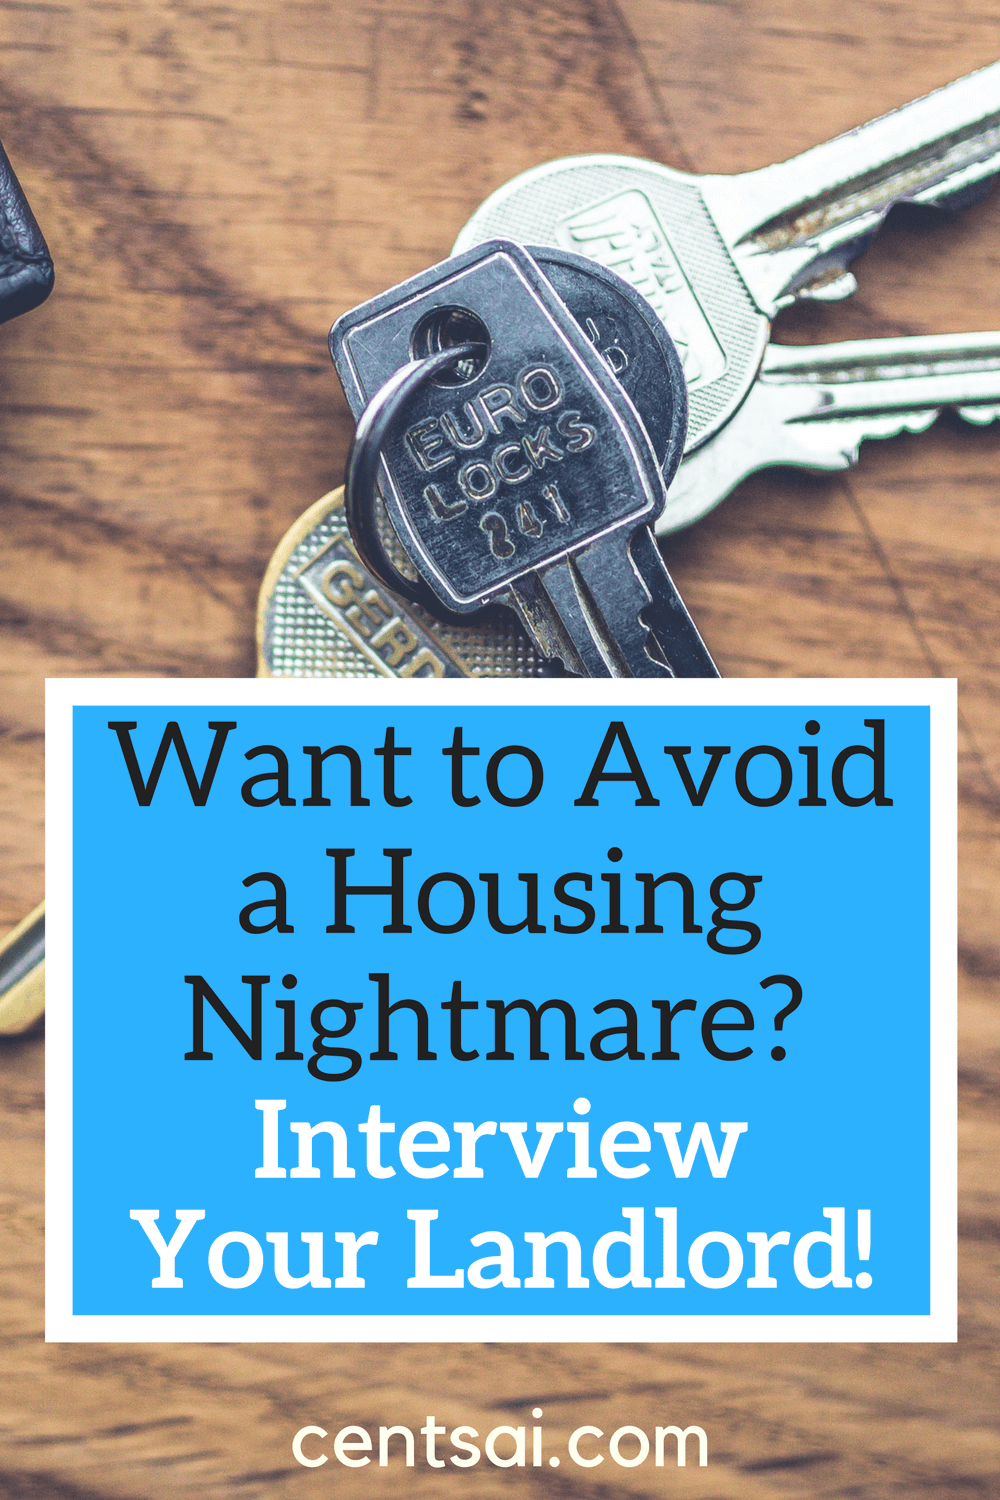 Want to Avoid a Housing Nightmare